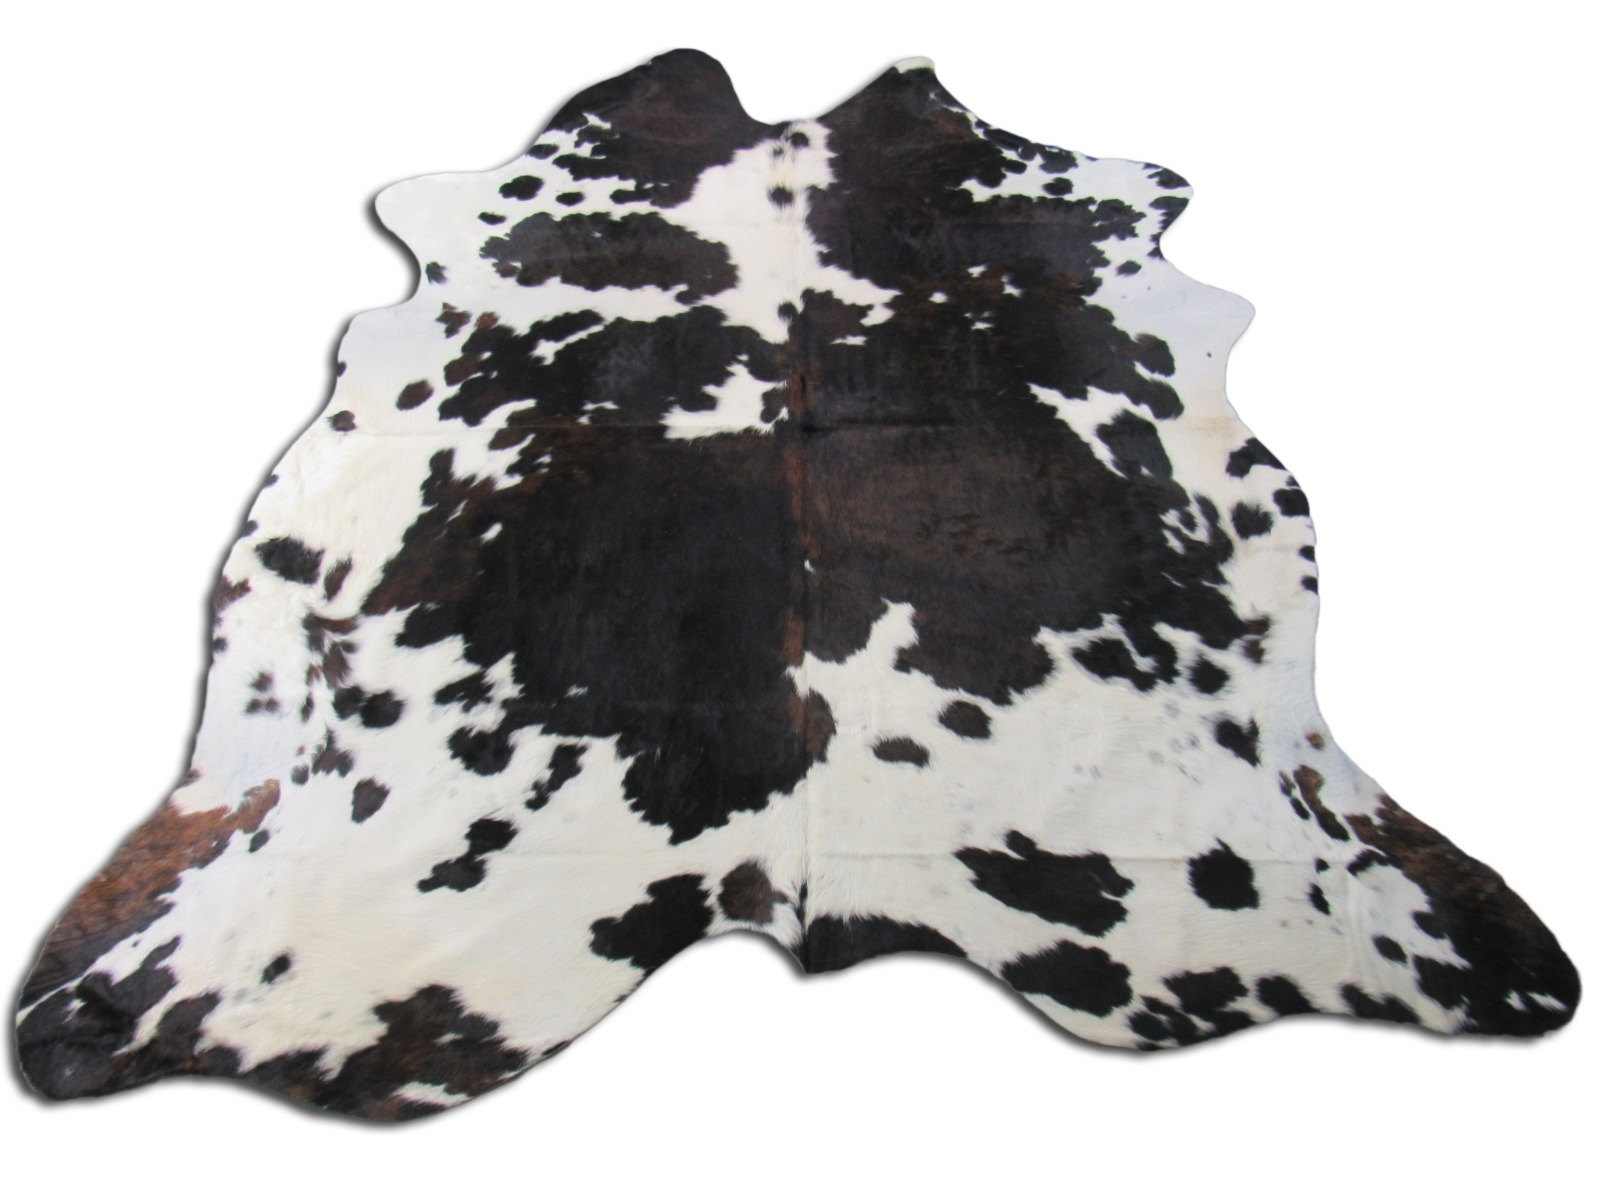 A-1358 Tricolor Speckled Cowhide Rug Size: 7 1/4' X 7 1/2'